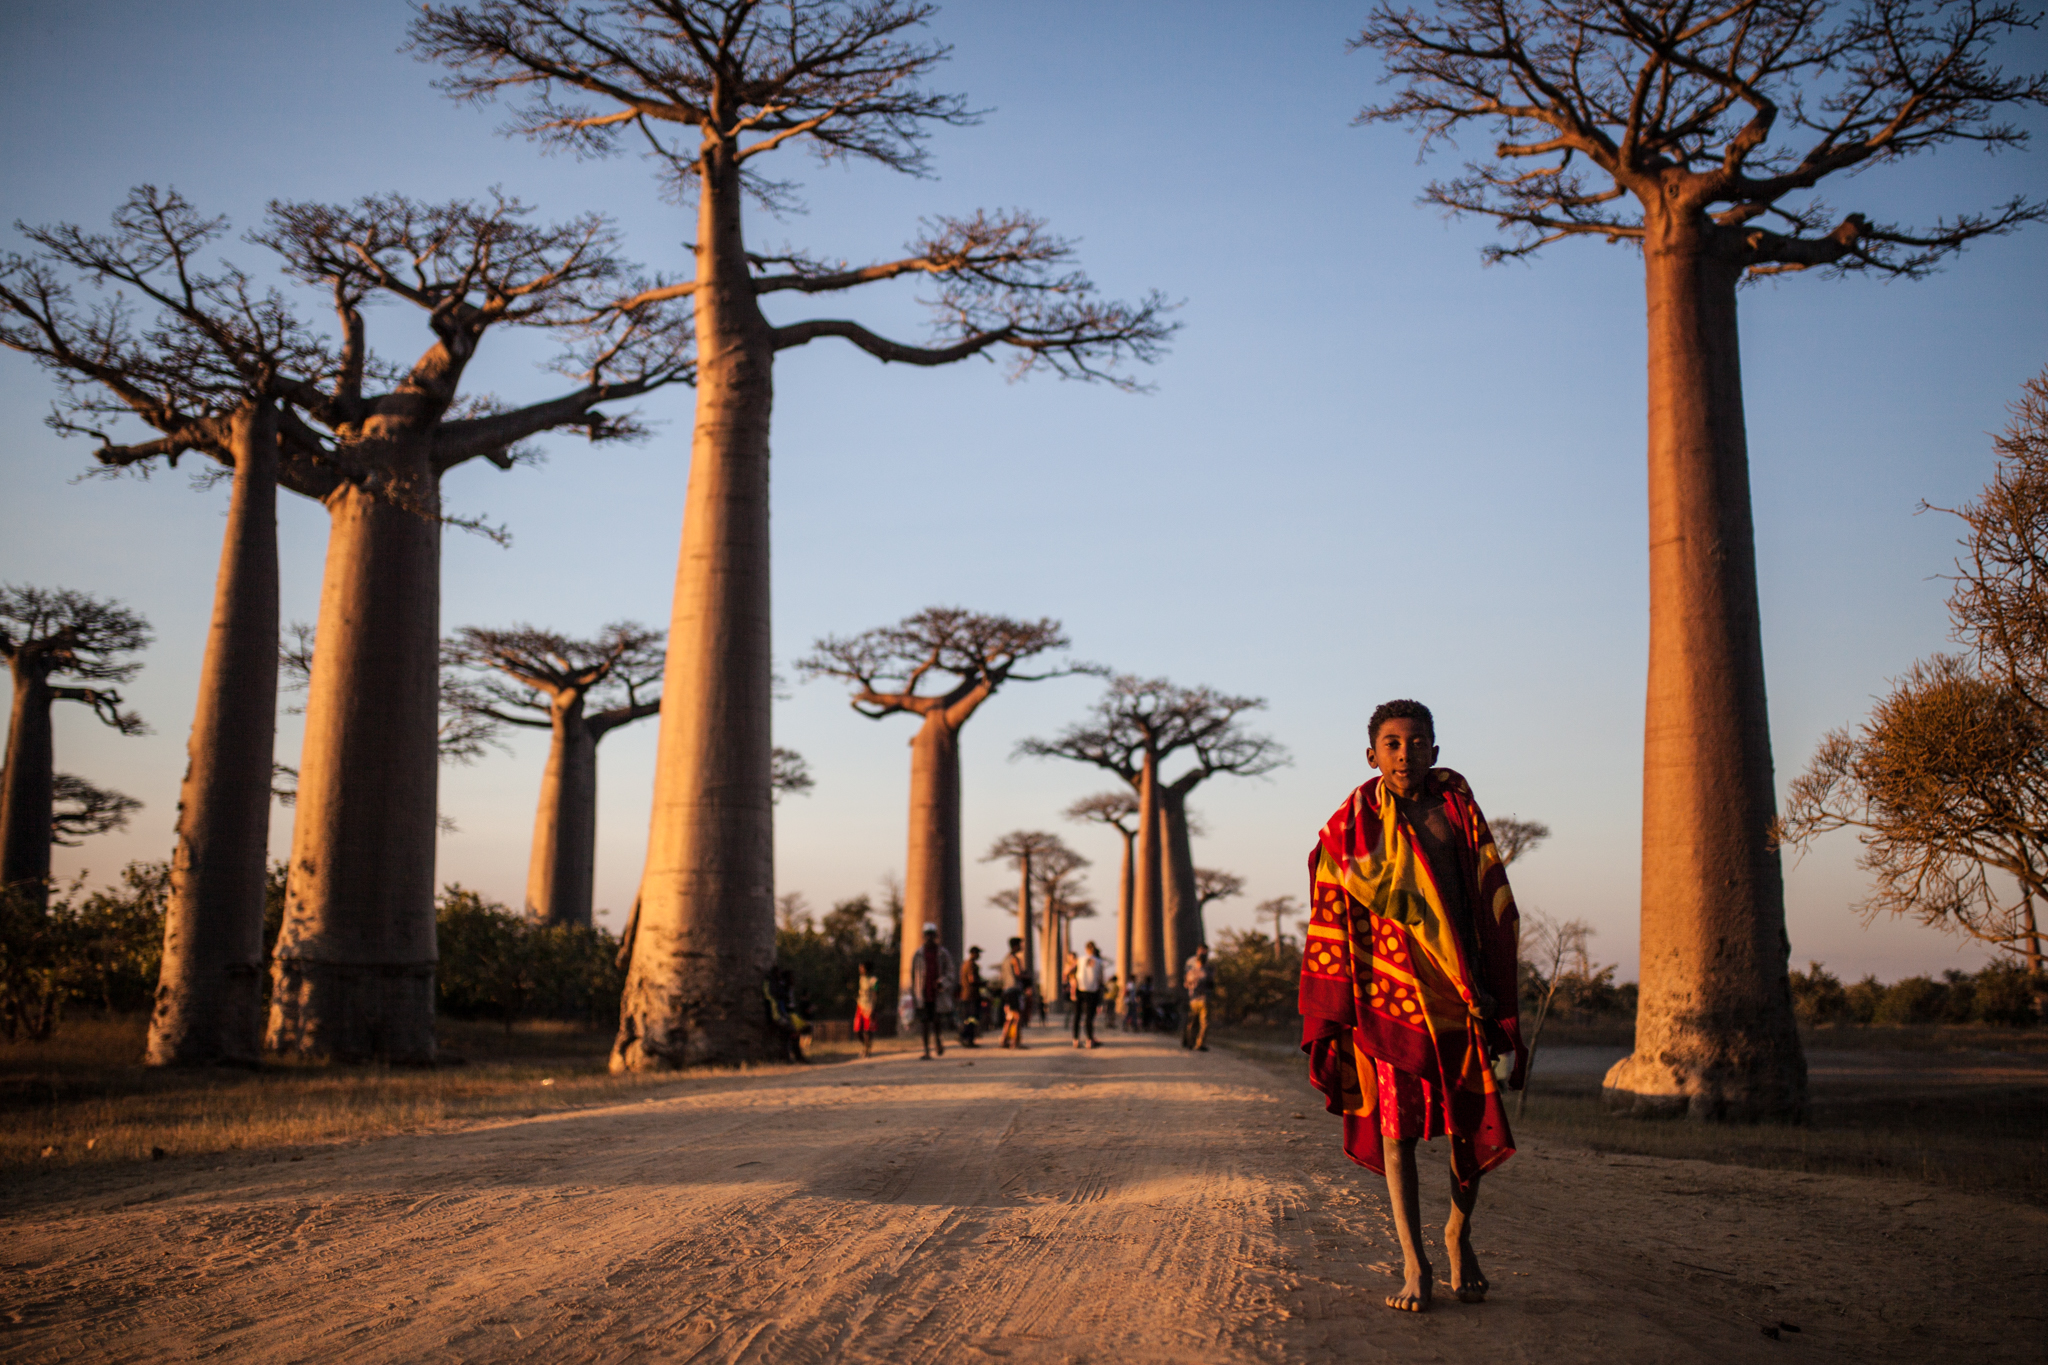 Close to the Coastal Town of Morondava, the Mighty Baobabs Lining the RN8 Have Become A Popular Tourist Attraction